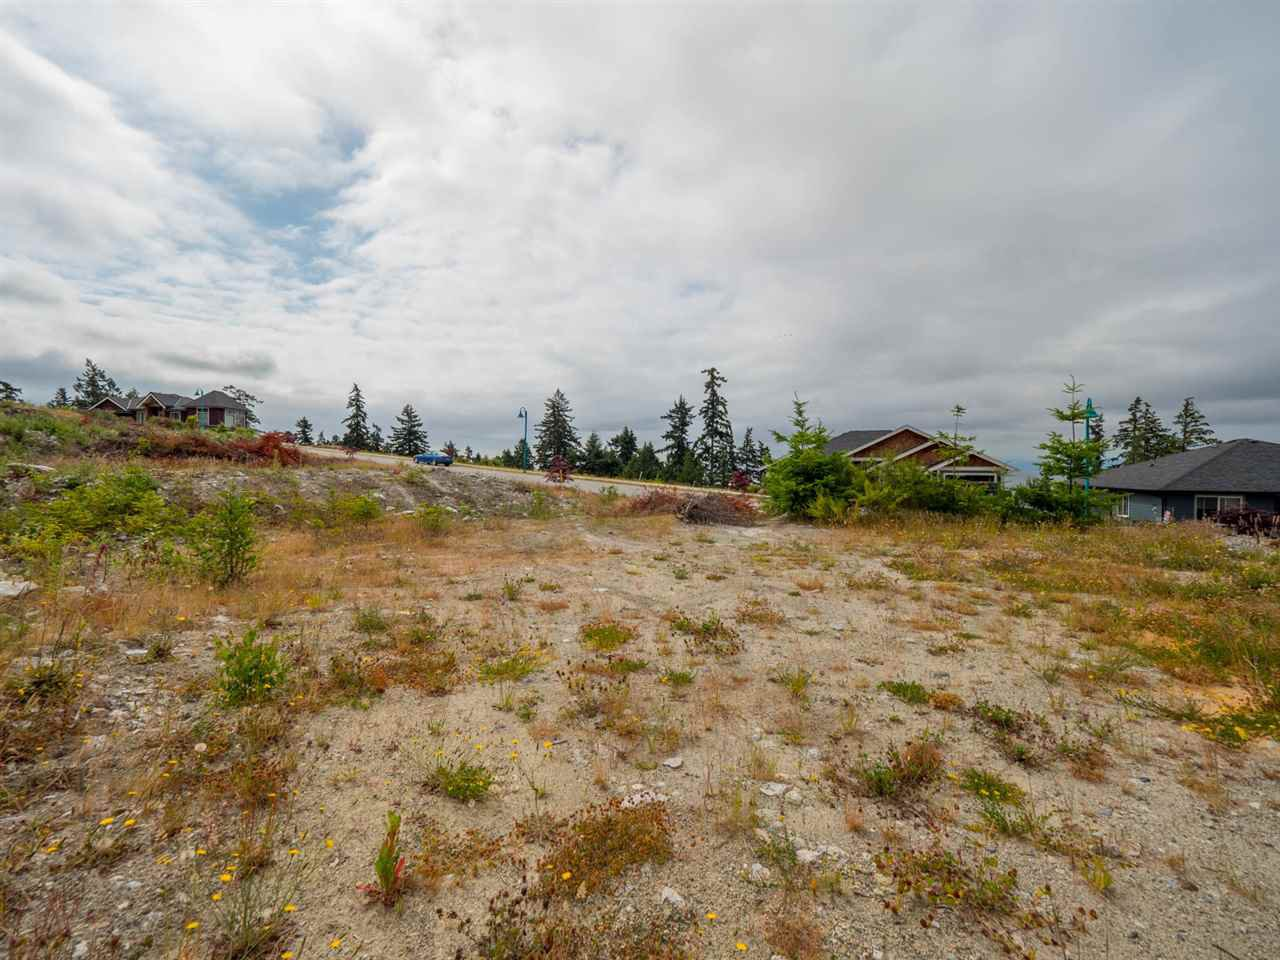 Main Photo: LOT 16 BARNACLE Street in Sechelt: Sechelt District Land for sale (Sunshine Coast)  : MLS®# R2382783